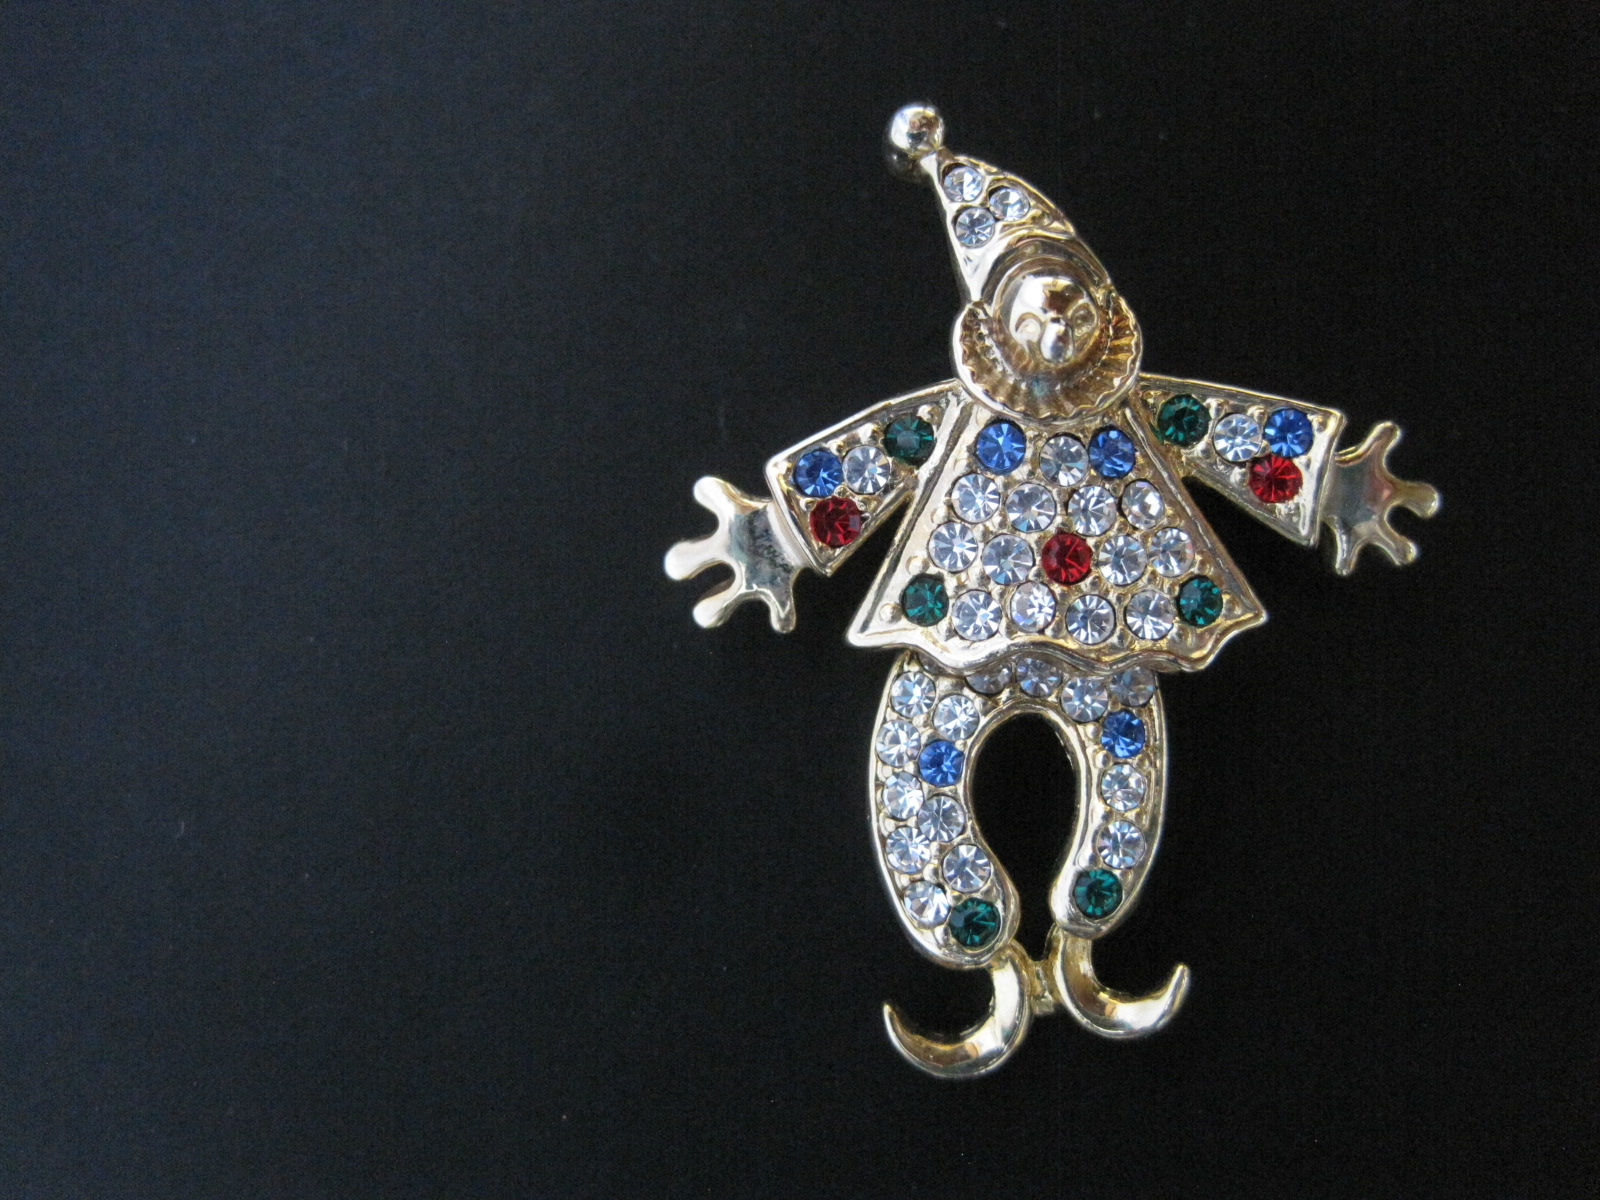 Lot 28 - Clown brooch paved with rubies, diamonds, sapphires and emeralds - Gross weight: 10 g [...]